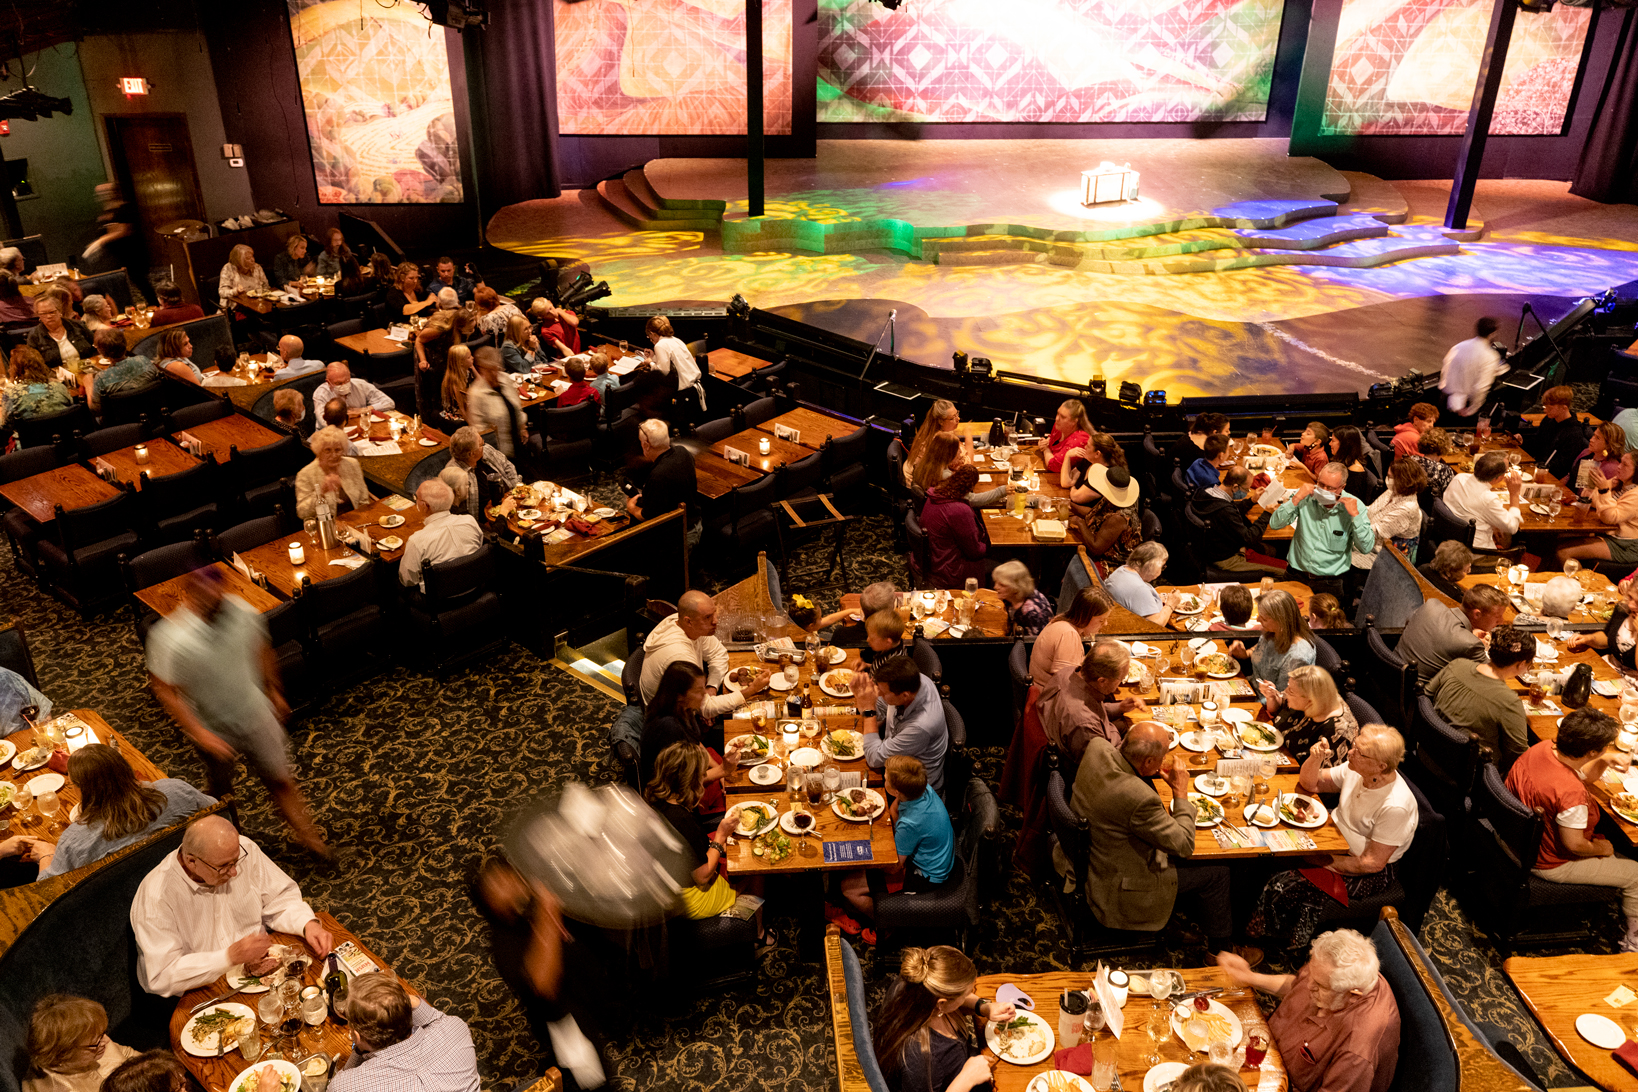 People having dinner at the Chanhassen Dinner Theatres in Minnesota